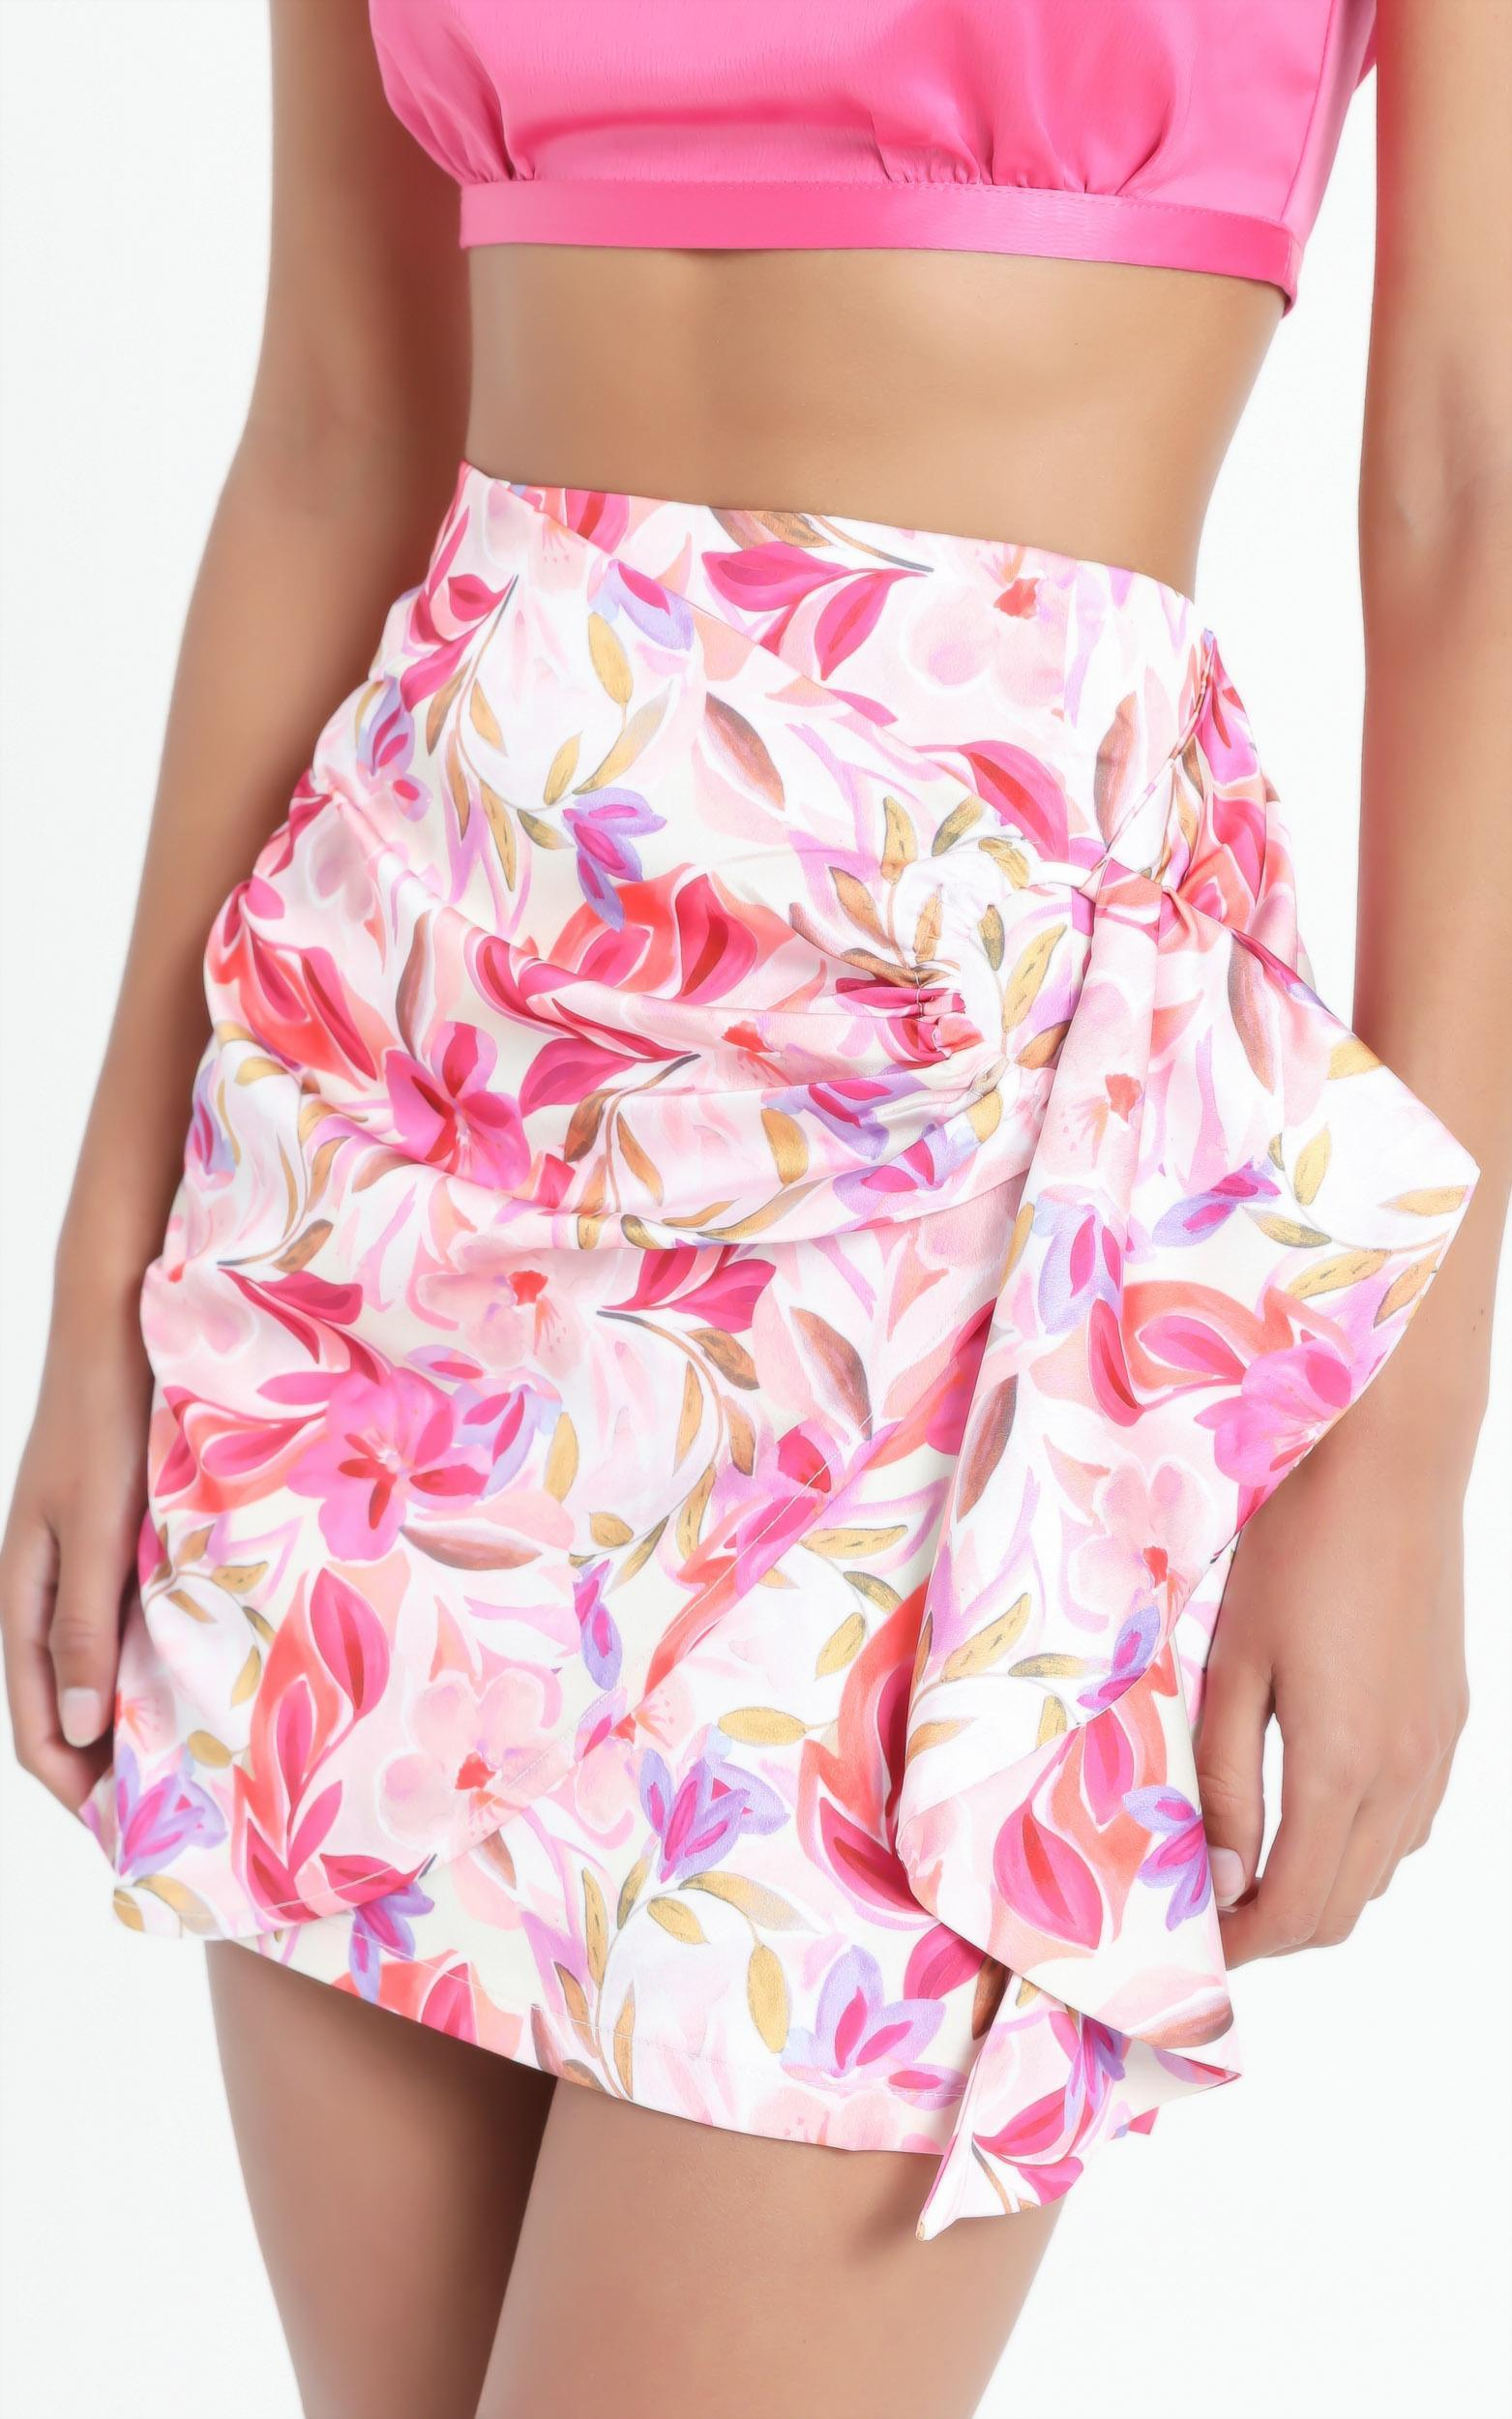 Becky Mini Skirt in Eventful Bloom - 6 (XS), Pink, hi-res image number null